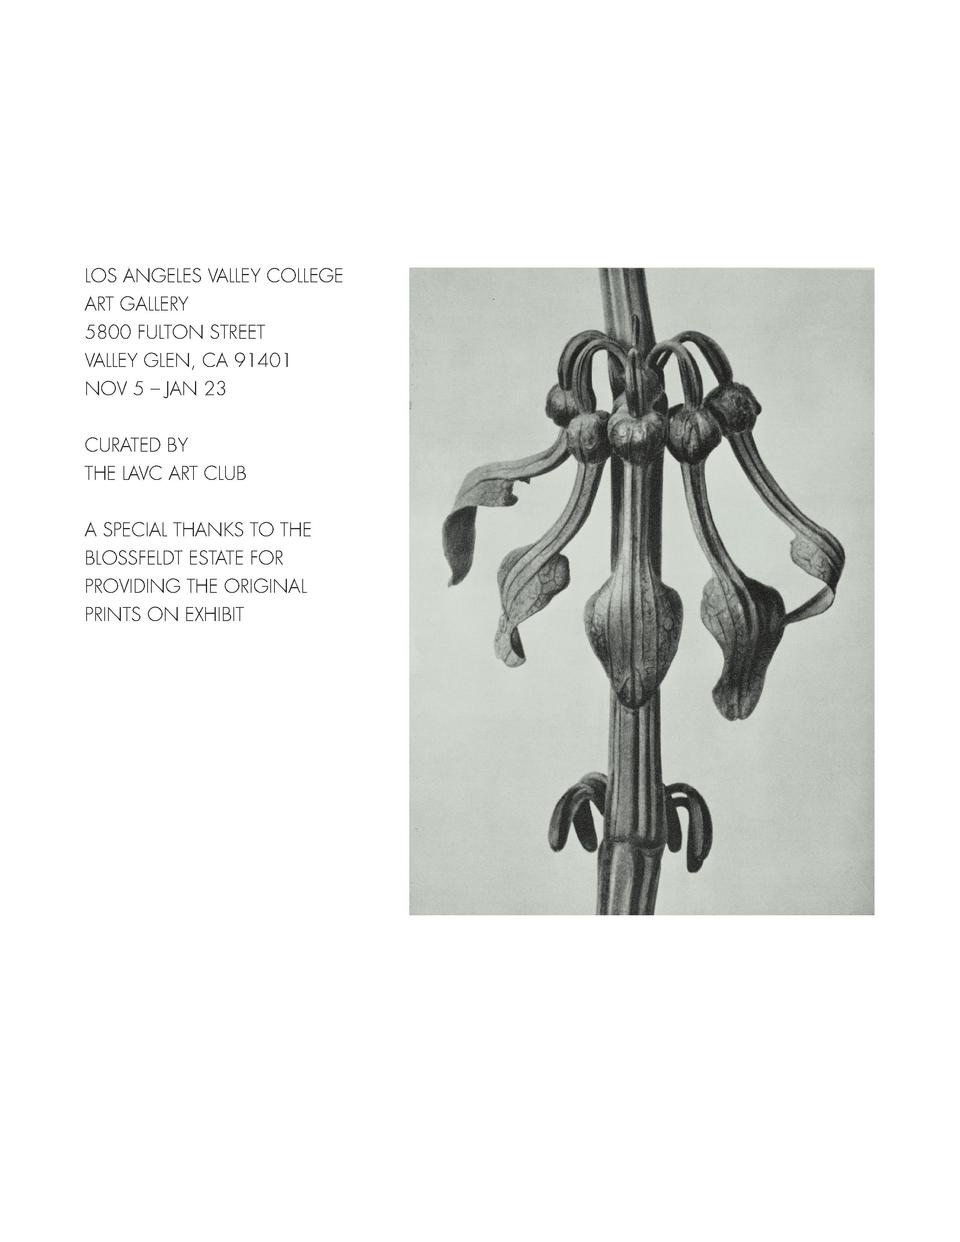 LOS ANGELES VALLEY COLLEGE ART GALLERY 5800 FULTON STREET VALLEY GLEN, CA 91401 NOV 5     JAN 23 CURATED BY THE LAVC ART C...